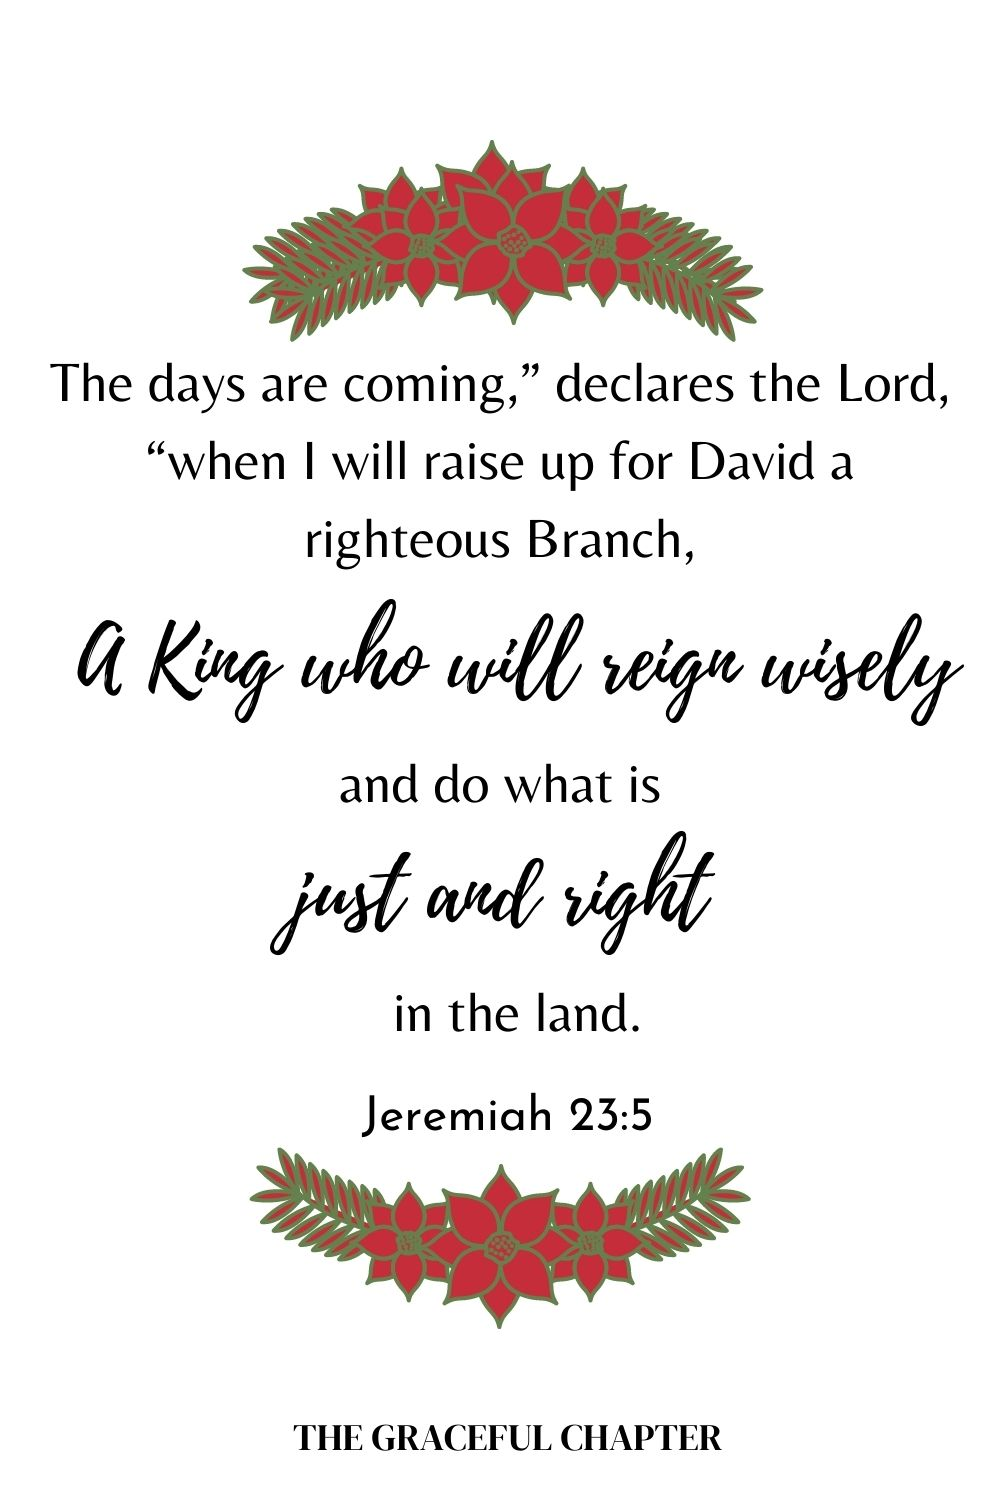 "The days are coming,"" declares the Lord, ""when I will raise up for David a righteous Branch, a King who will reign wisely and do what is just and right in the land. Jeremiah 23:5"